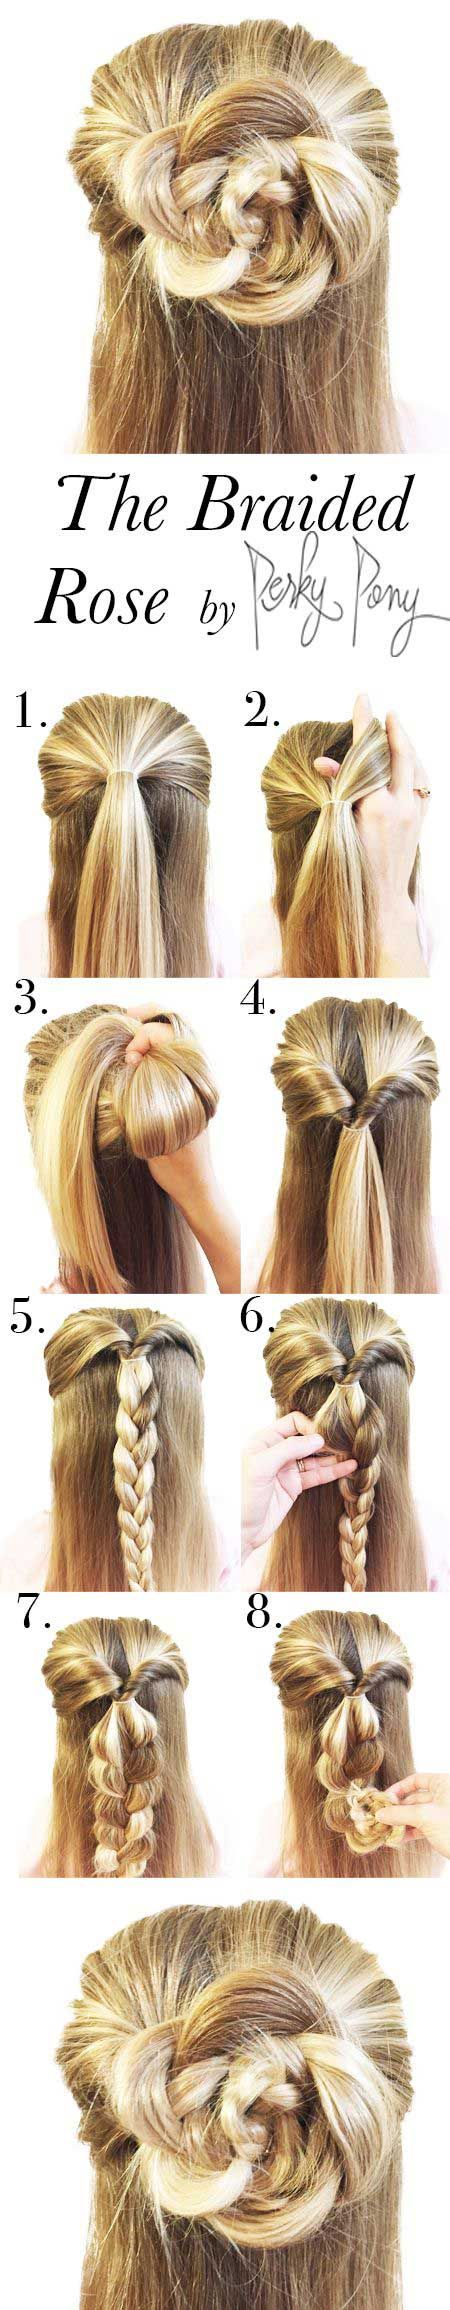 By now, we're all well aware that the half-up half-down hairstyle is very much A Thing in the beauty world. It started with messy half top knots that were perfect for lazy days when we still wanted to look cute, but has expanded to even be perfect for fancy occasions. If you're looking for the … Read More